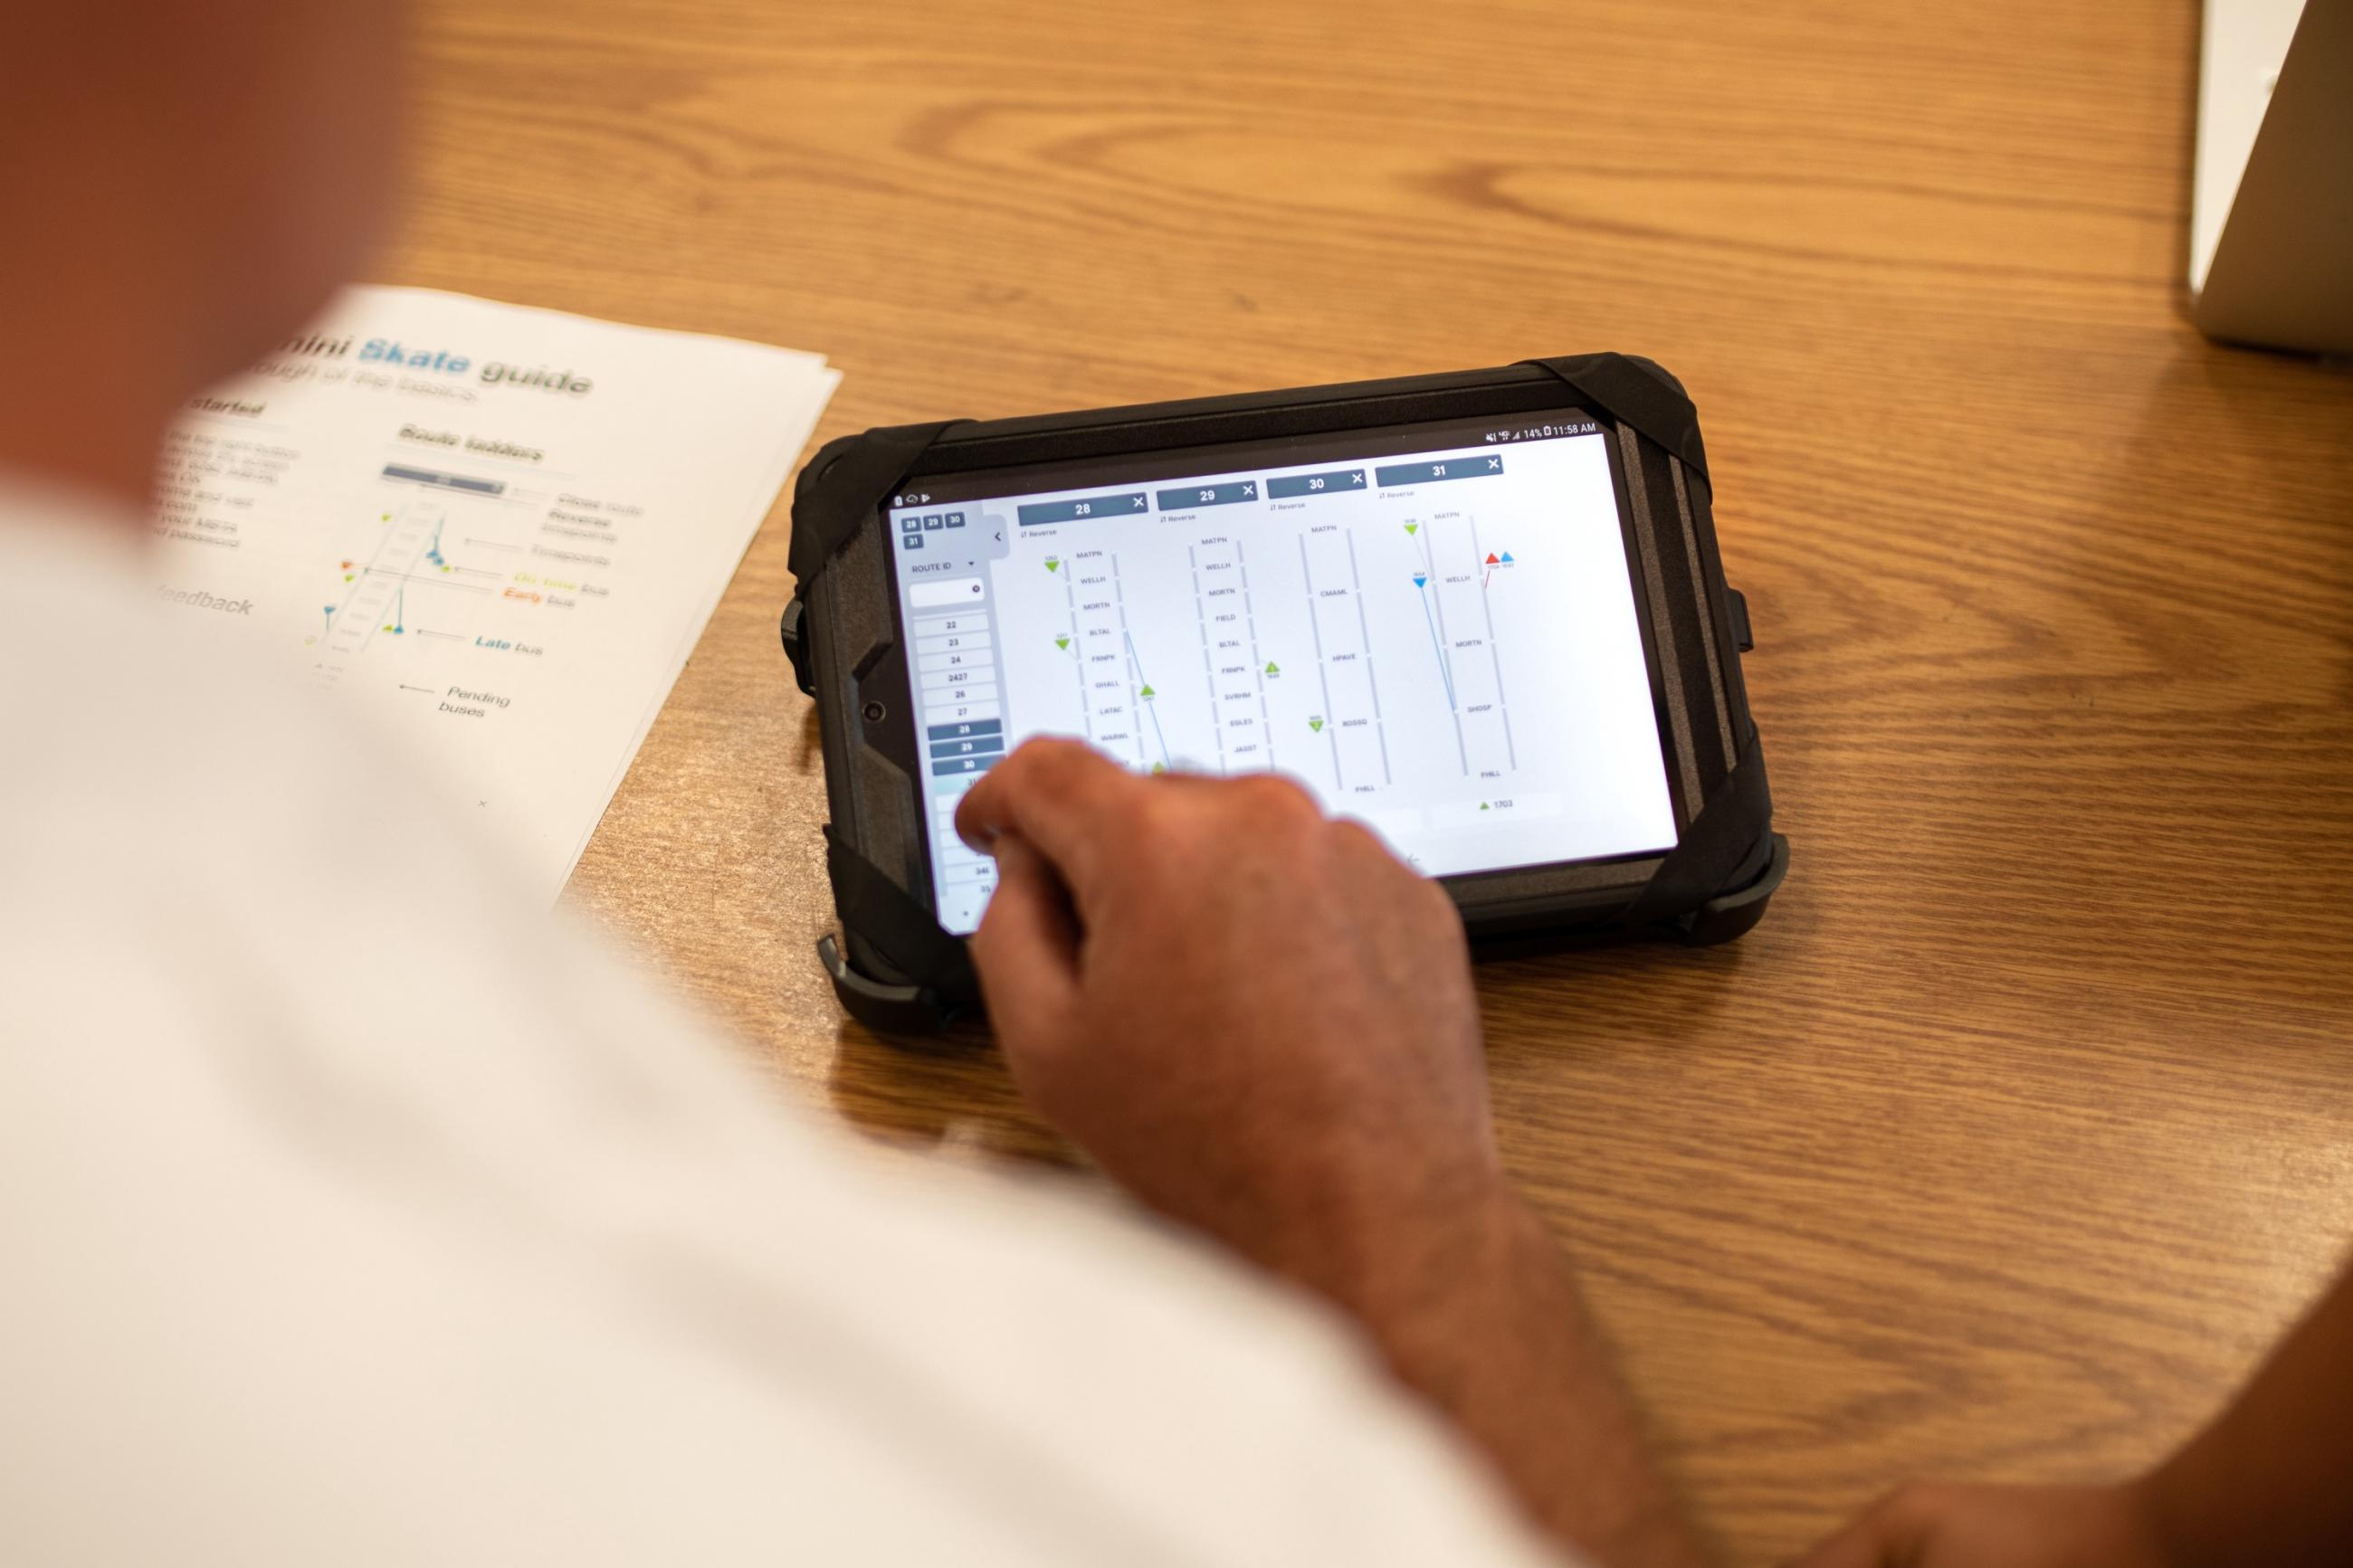 A bus inspector uses Skate, a mobile dispatching app for tablets that we built in-house